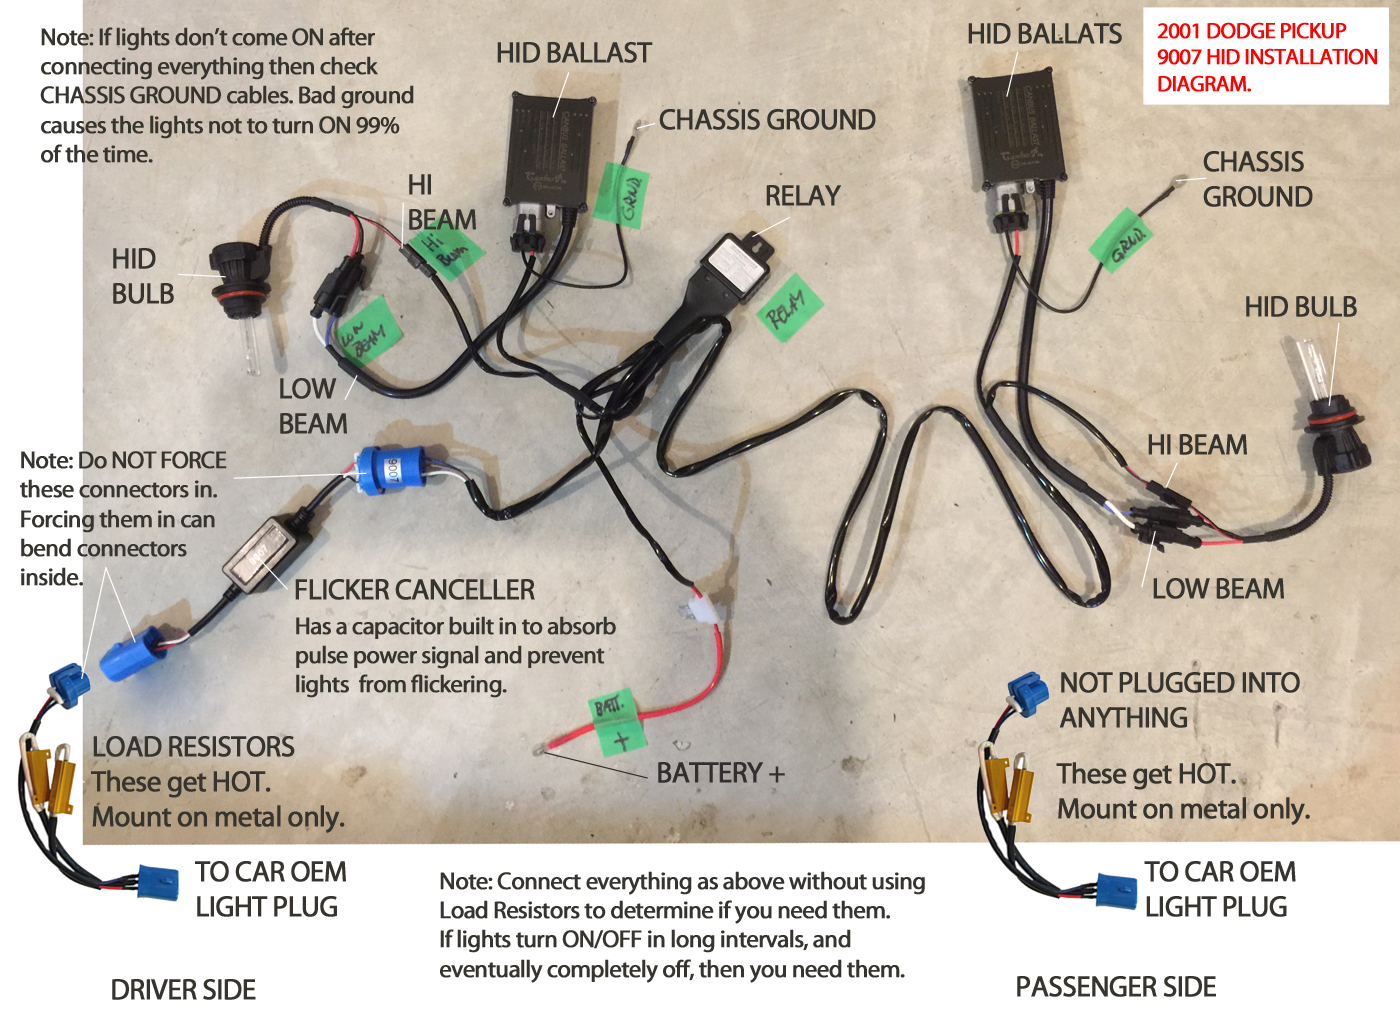 hid vision canada hid installation diagrams High Low HID Wiring-Diagram